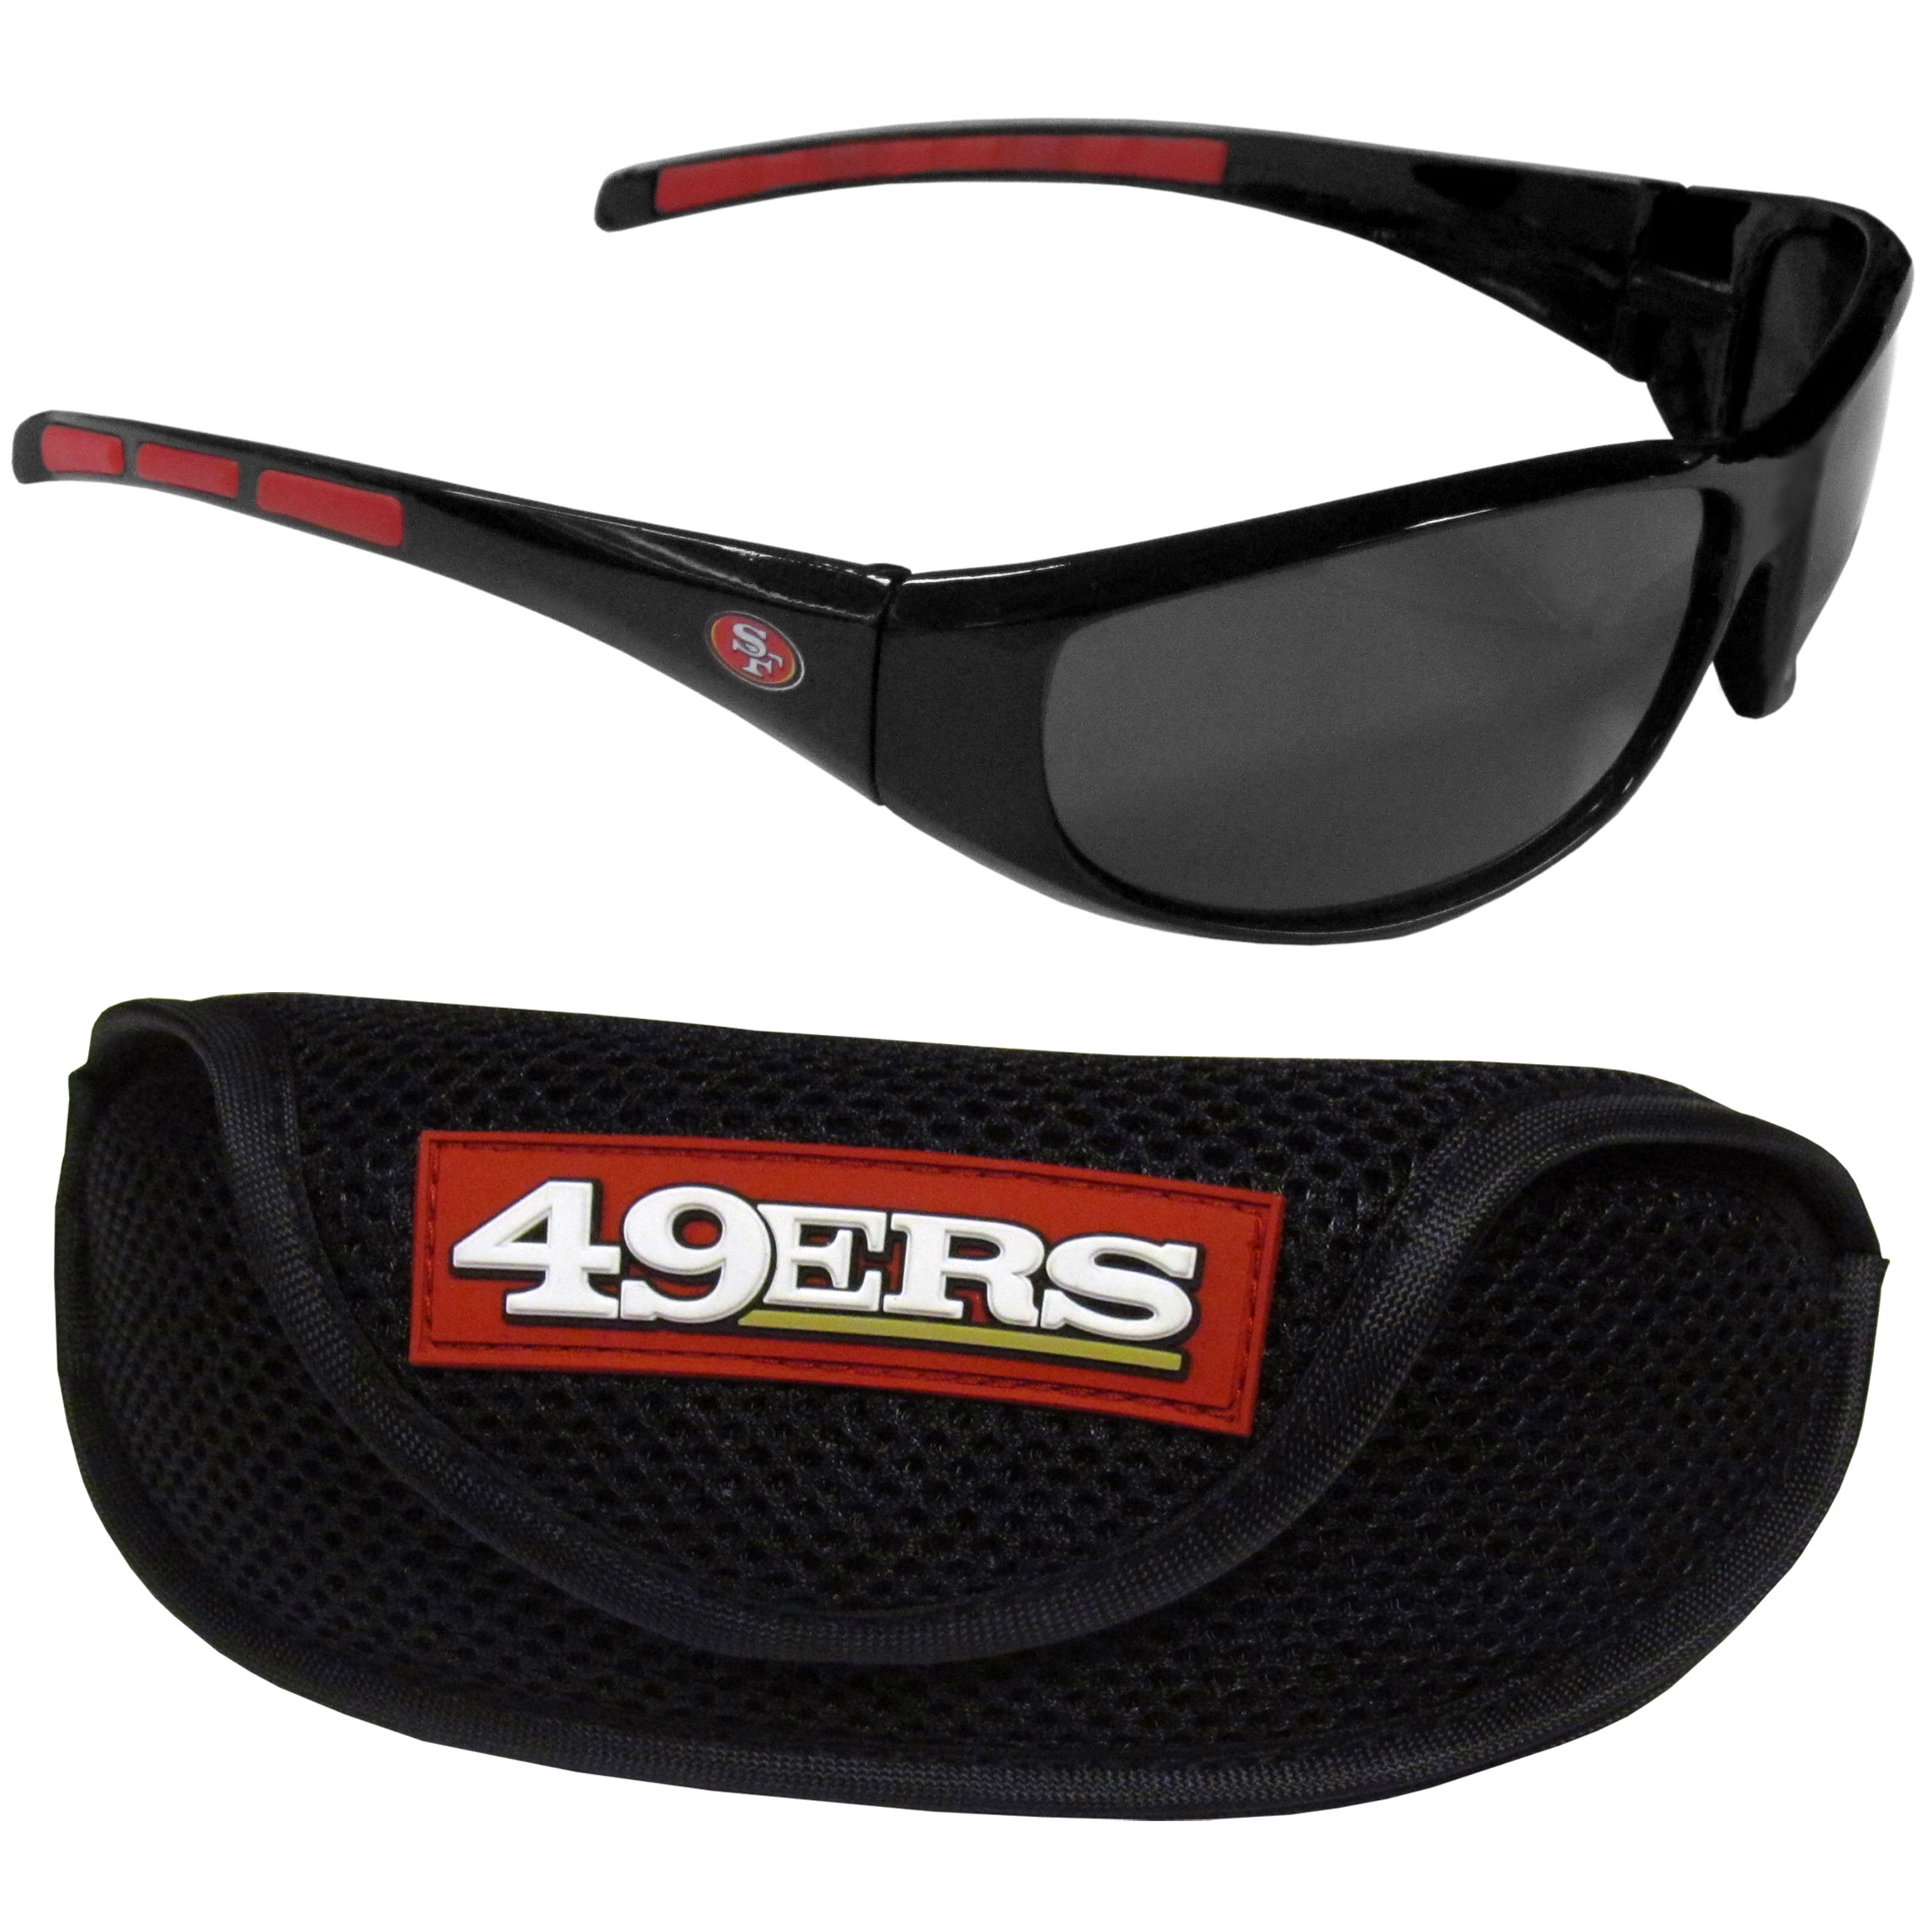 San Francisco 49ers Wrap Sunglass and Case Set - This great set includes a high quality pair of San Francisco 49ers wrap sunglasses and sport carrying case.